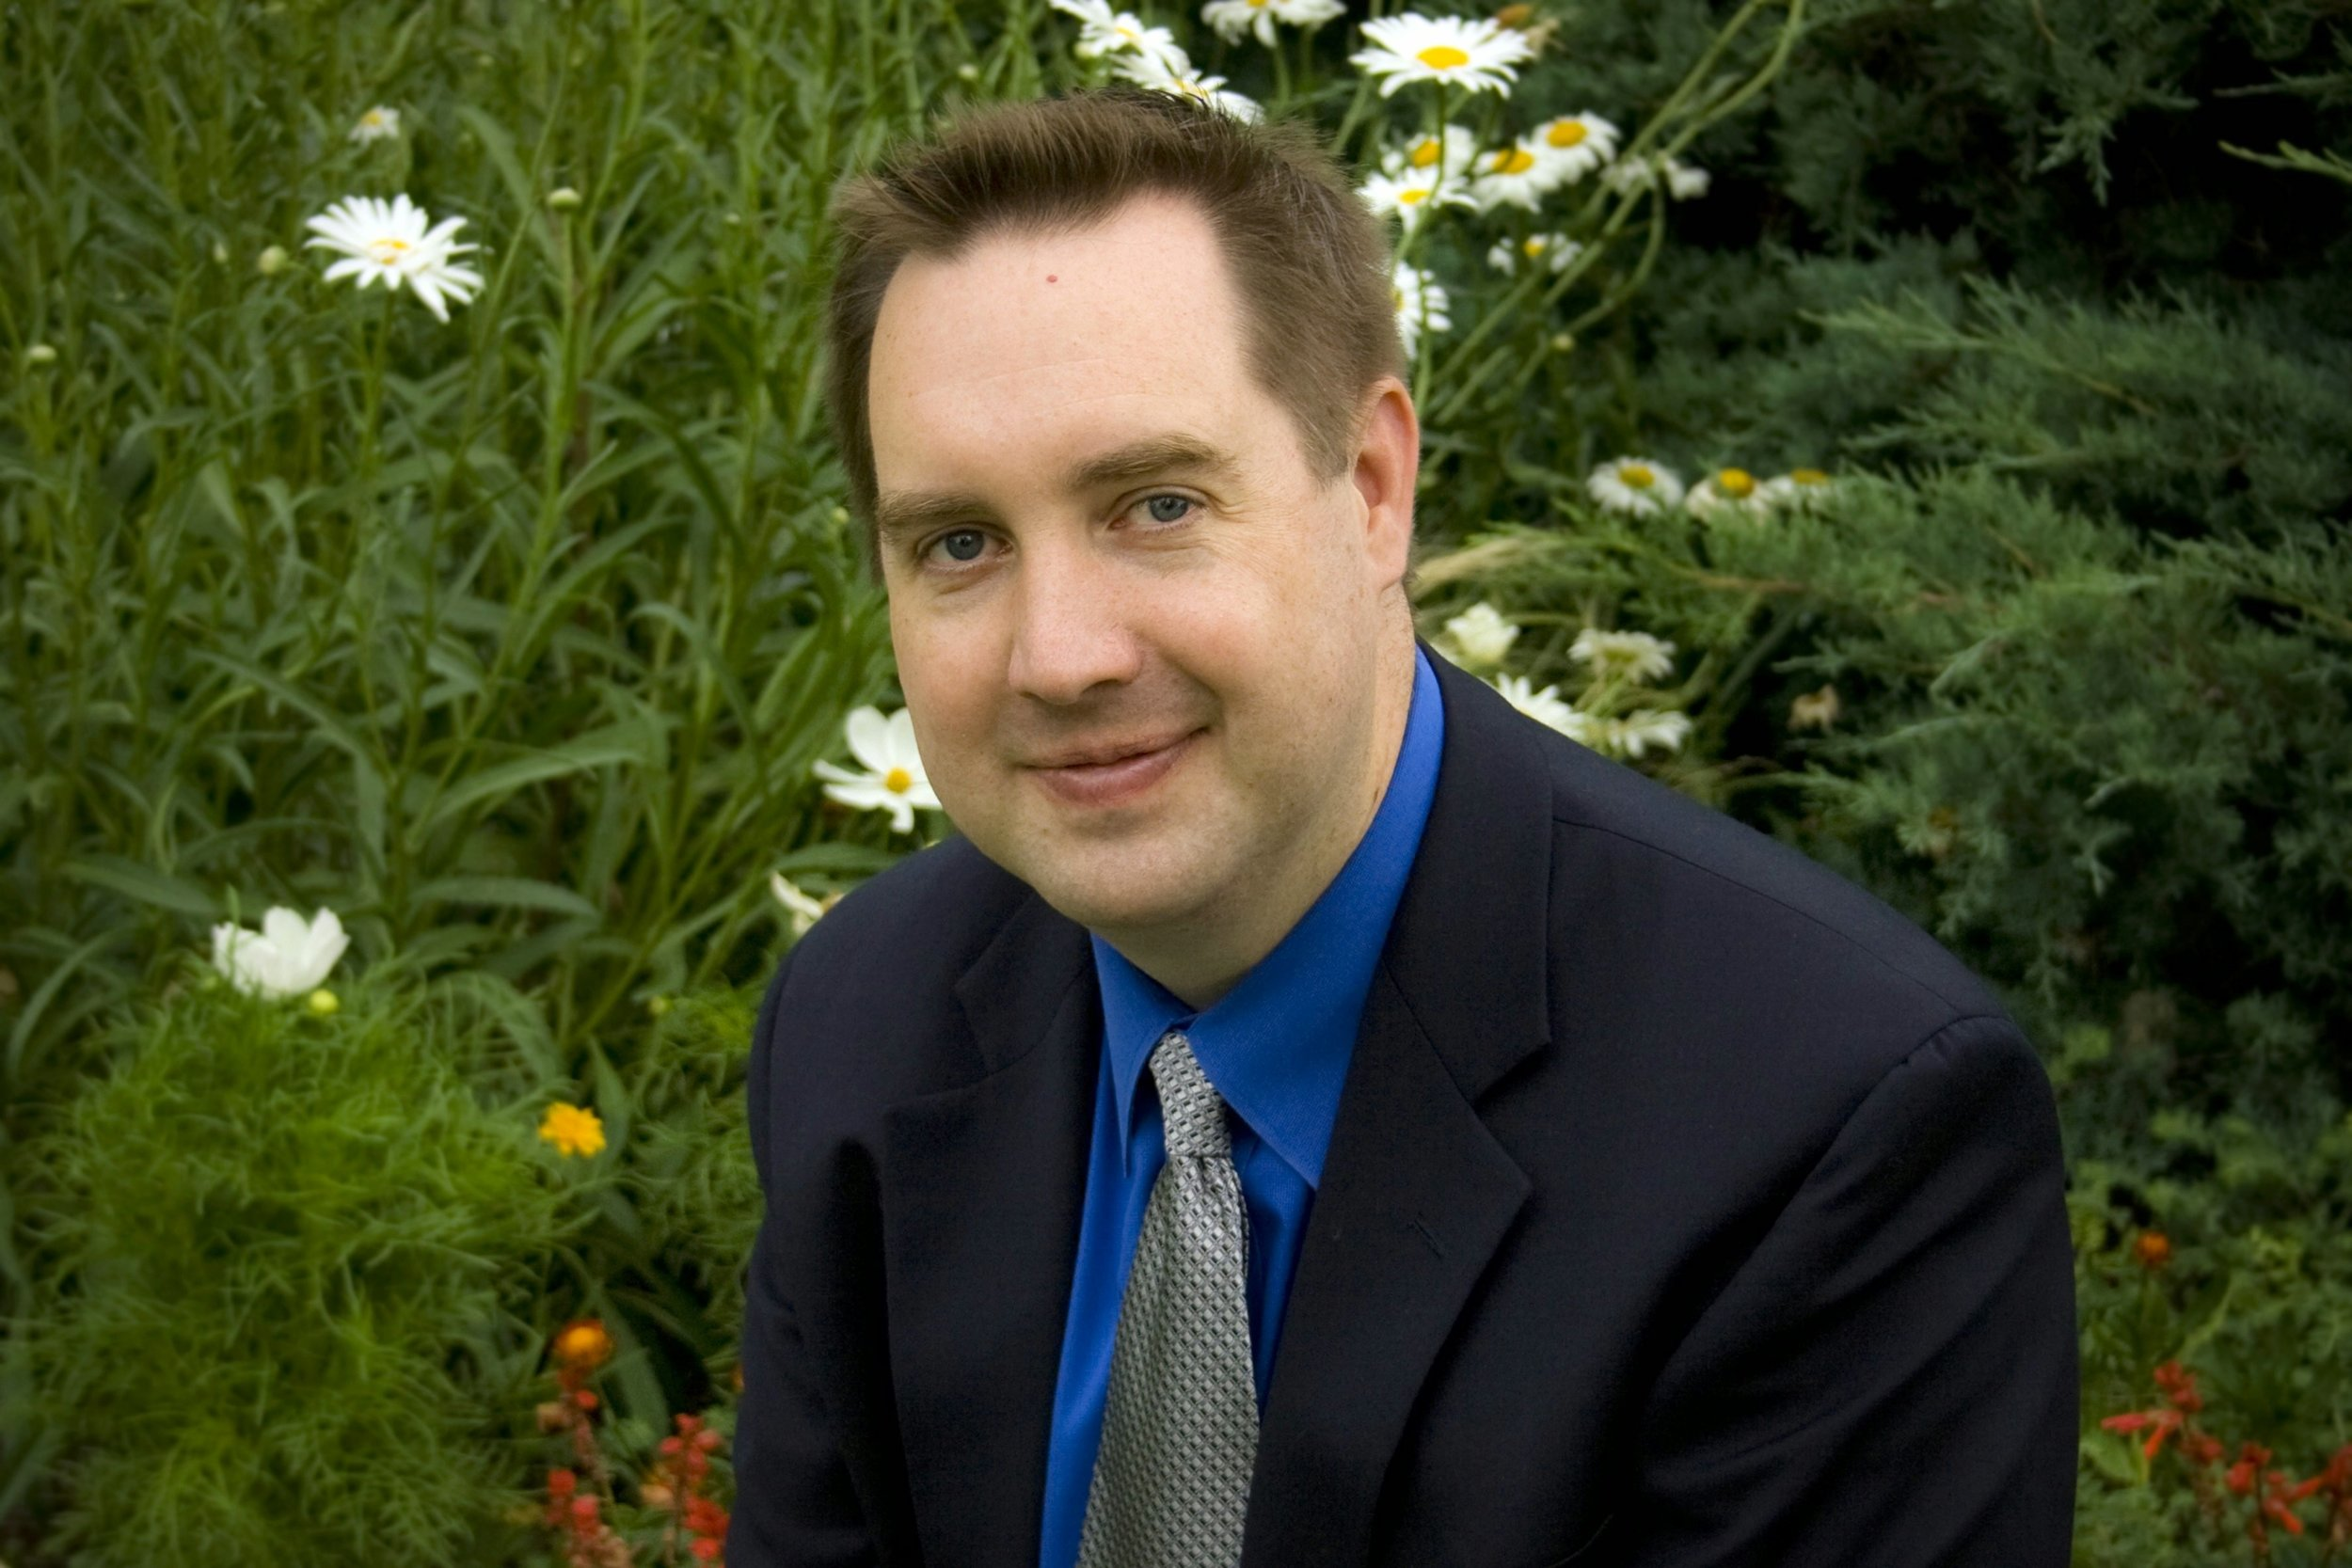 Jay Dew, Editor-in-Chief of the Texas A&M Press